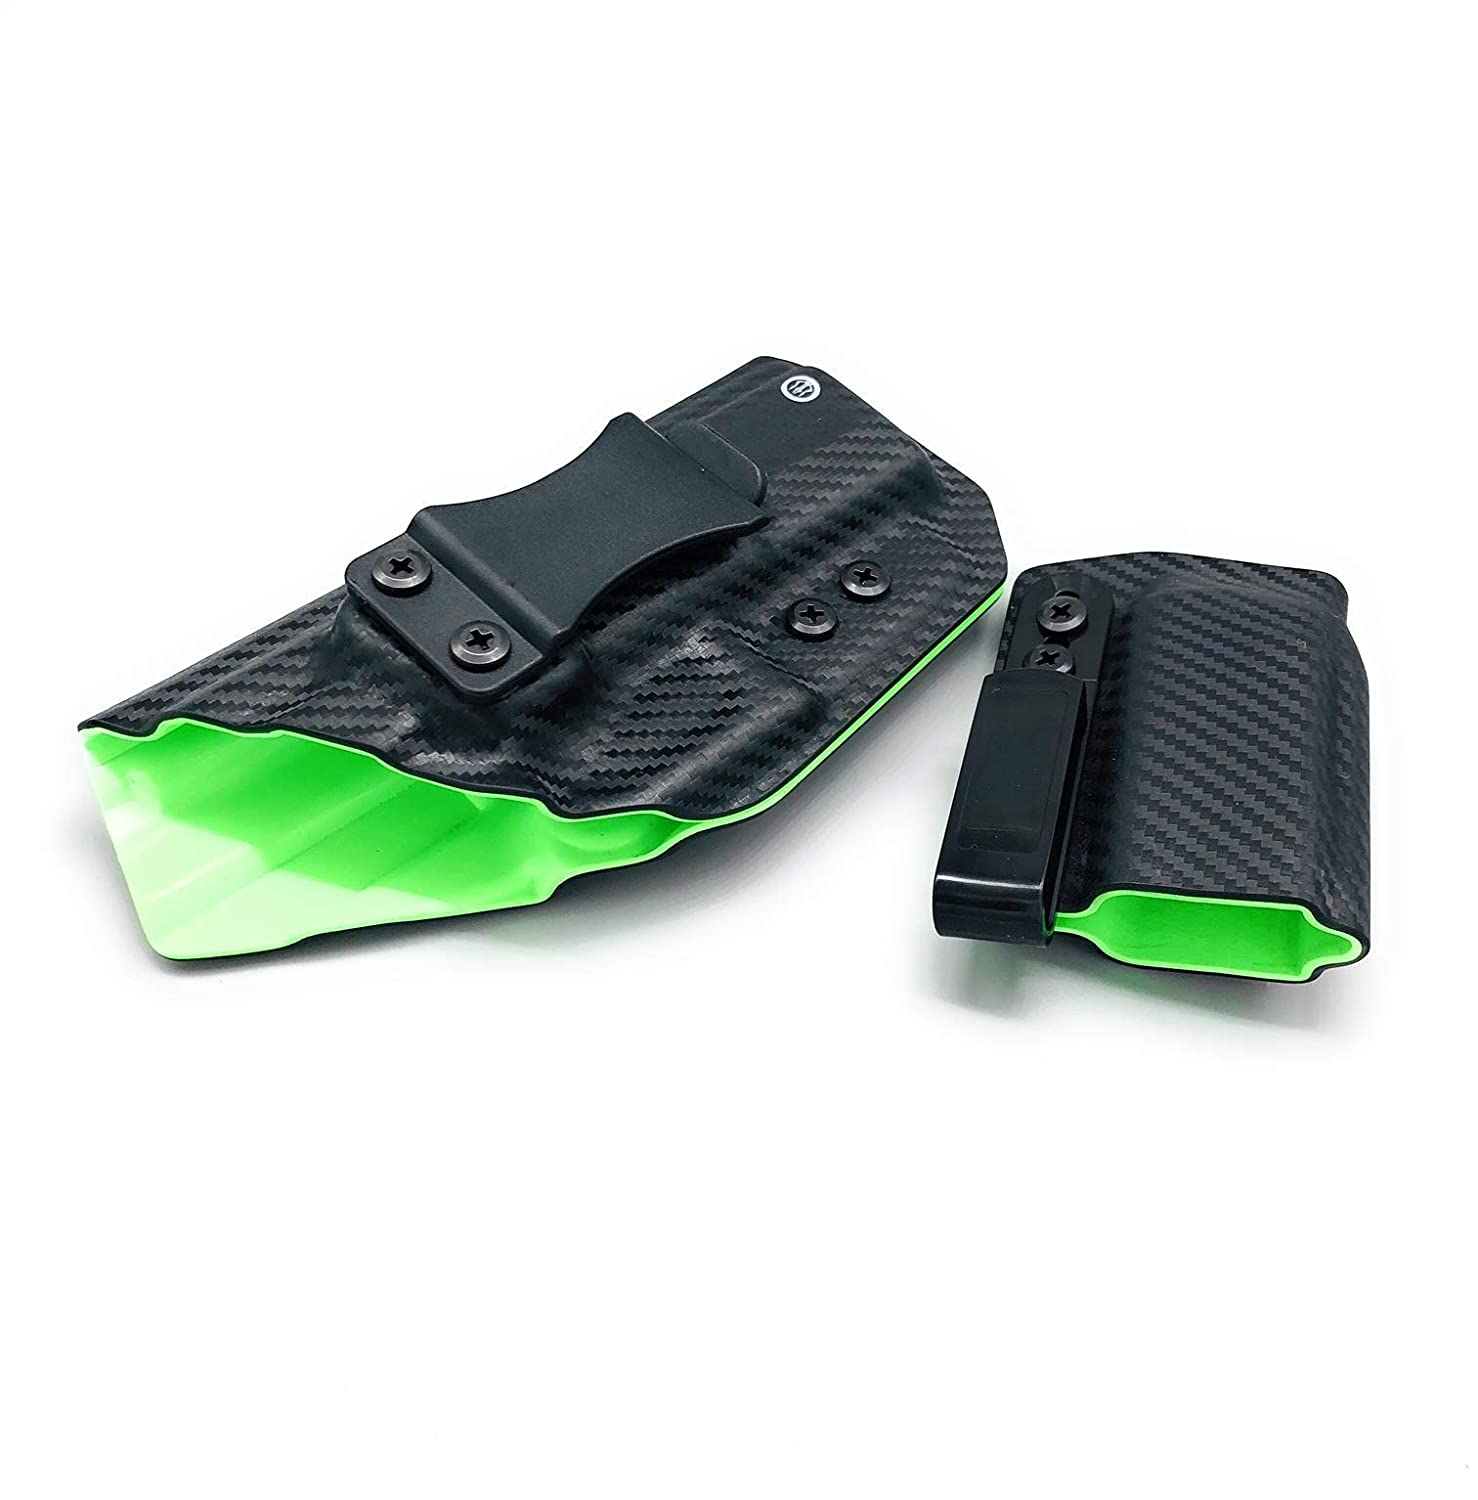 Neptune Bombing free shipping Concealment Dual Some reservation Layer IWB for Mag Holster Kydex Pouch